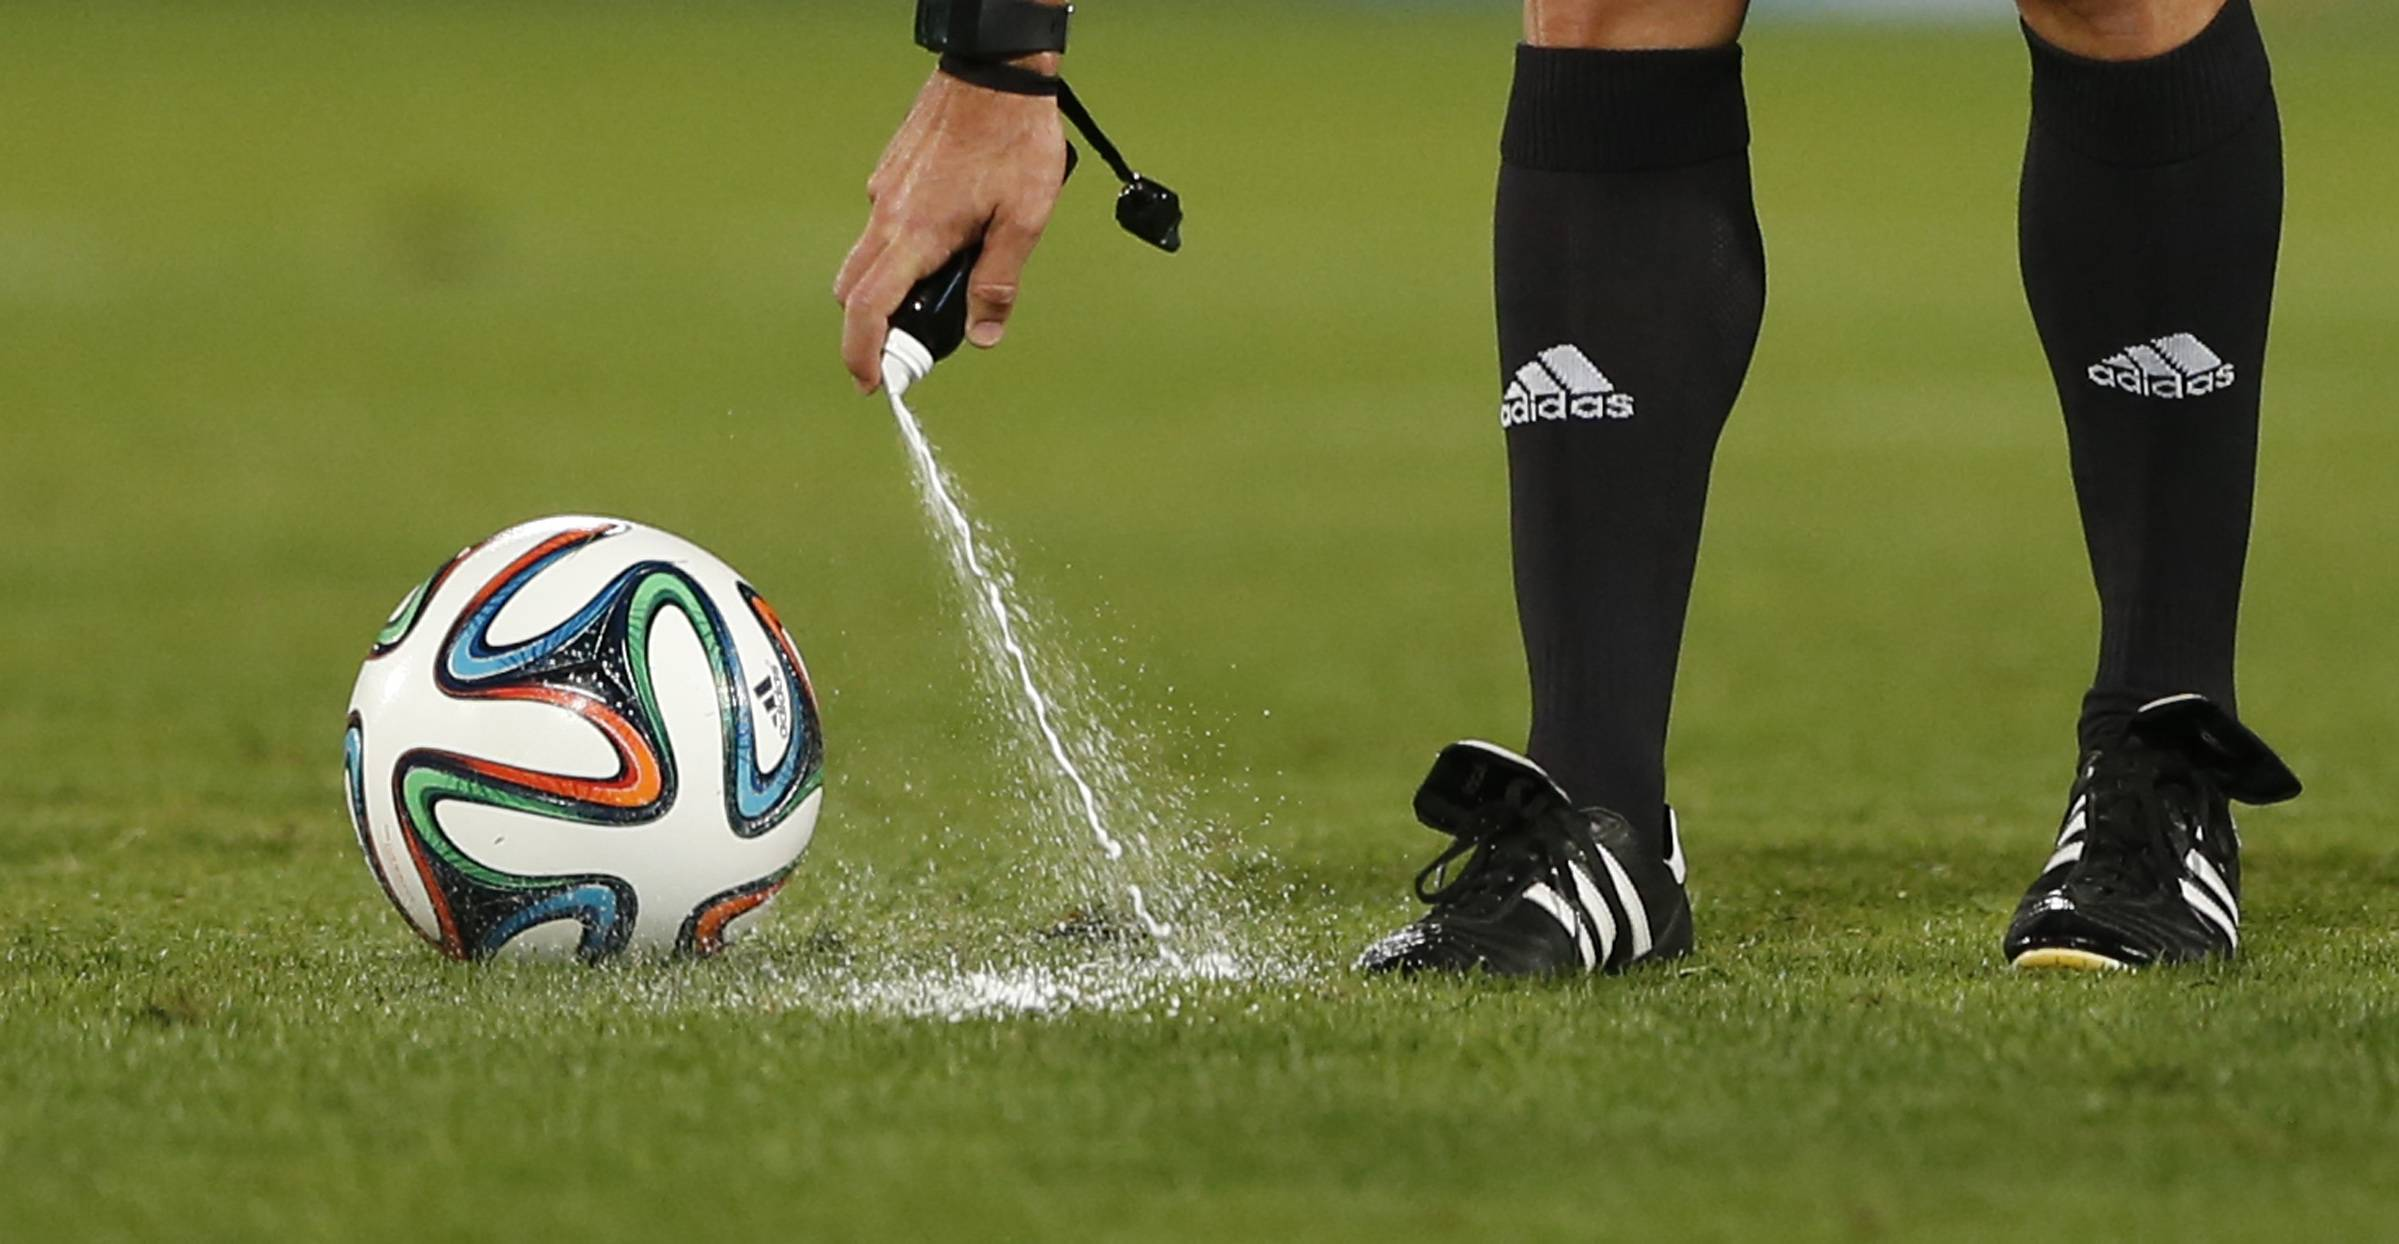 In this Wednesday, Dec. 18, 2013, file photo, referee Carlos Velasco of Spain marks a line with vanishing spray during the semi final soccer match between Raja Casablanca and Atletico Mineiro at the Club World Cup soccer tournament in Marrakech, Morocco. For the first time at a World Cup, technology will be used to determine whether a ball crosses the goal line during matches at the upcoming tournament in Brazil.